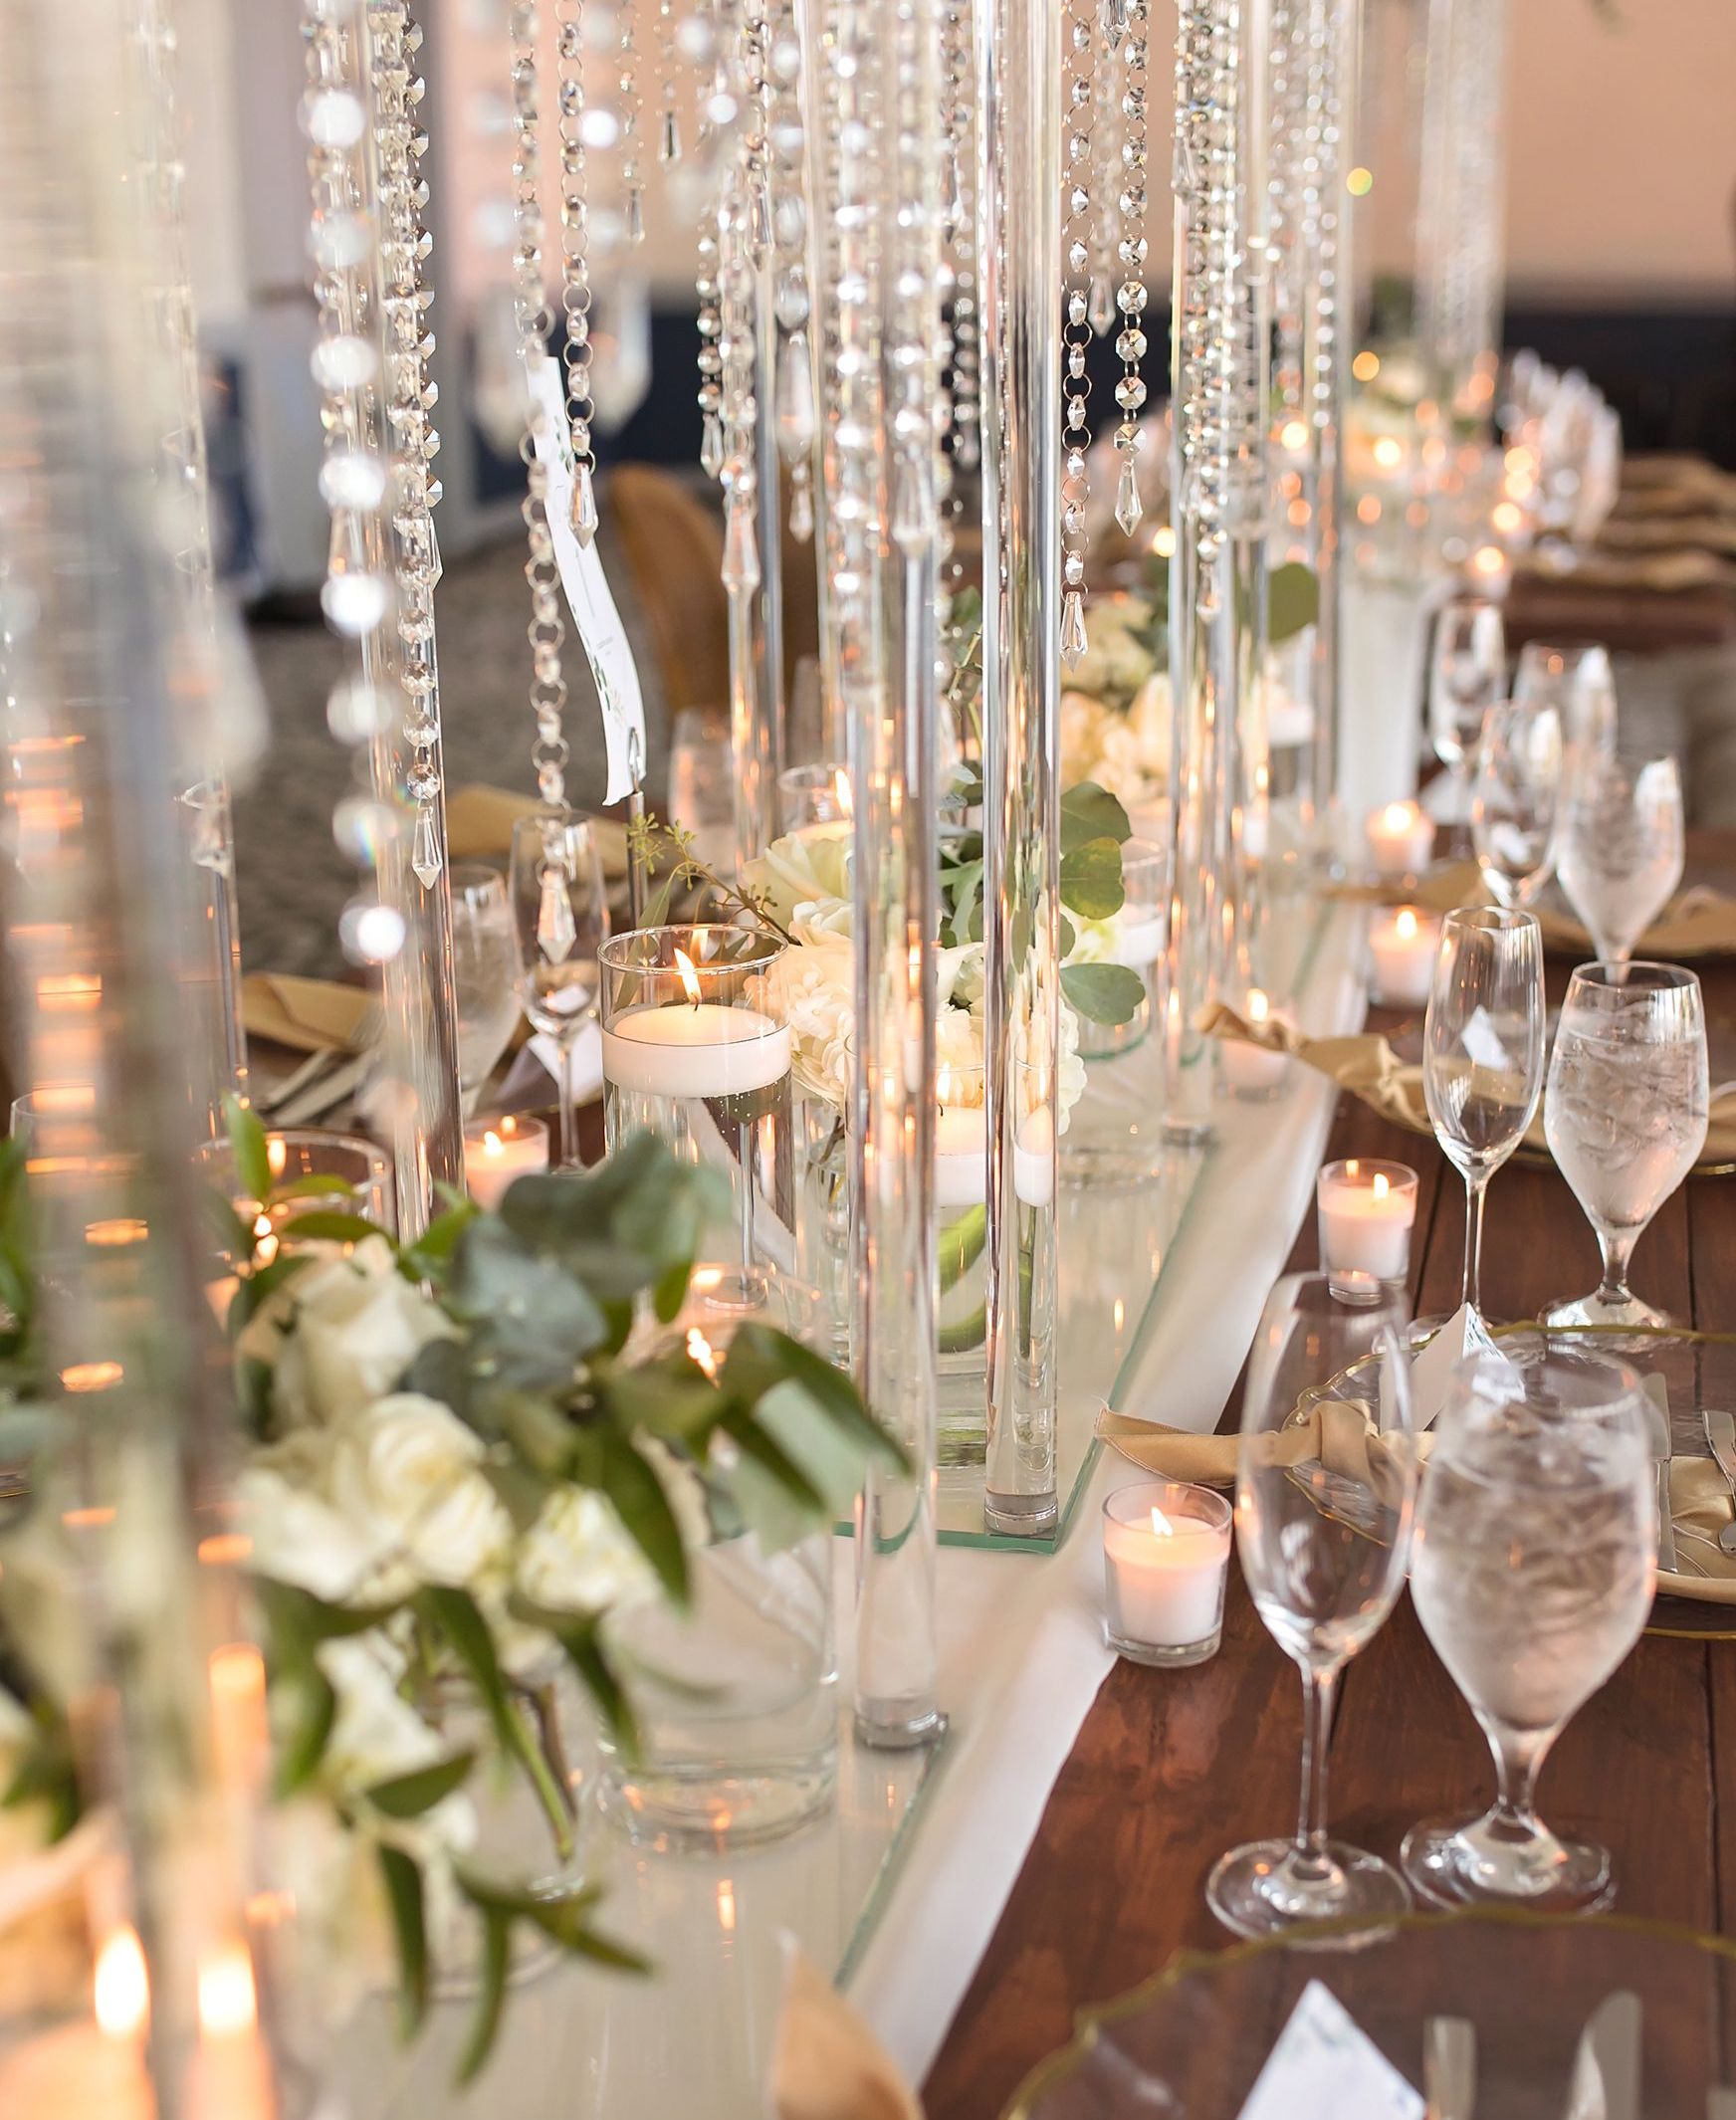 Crystal beads suspending from the table wedding centerpieces.